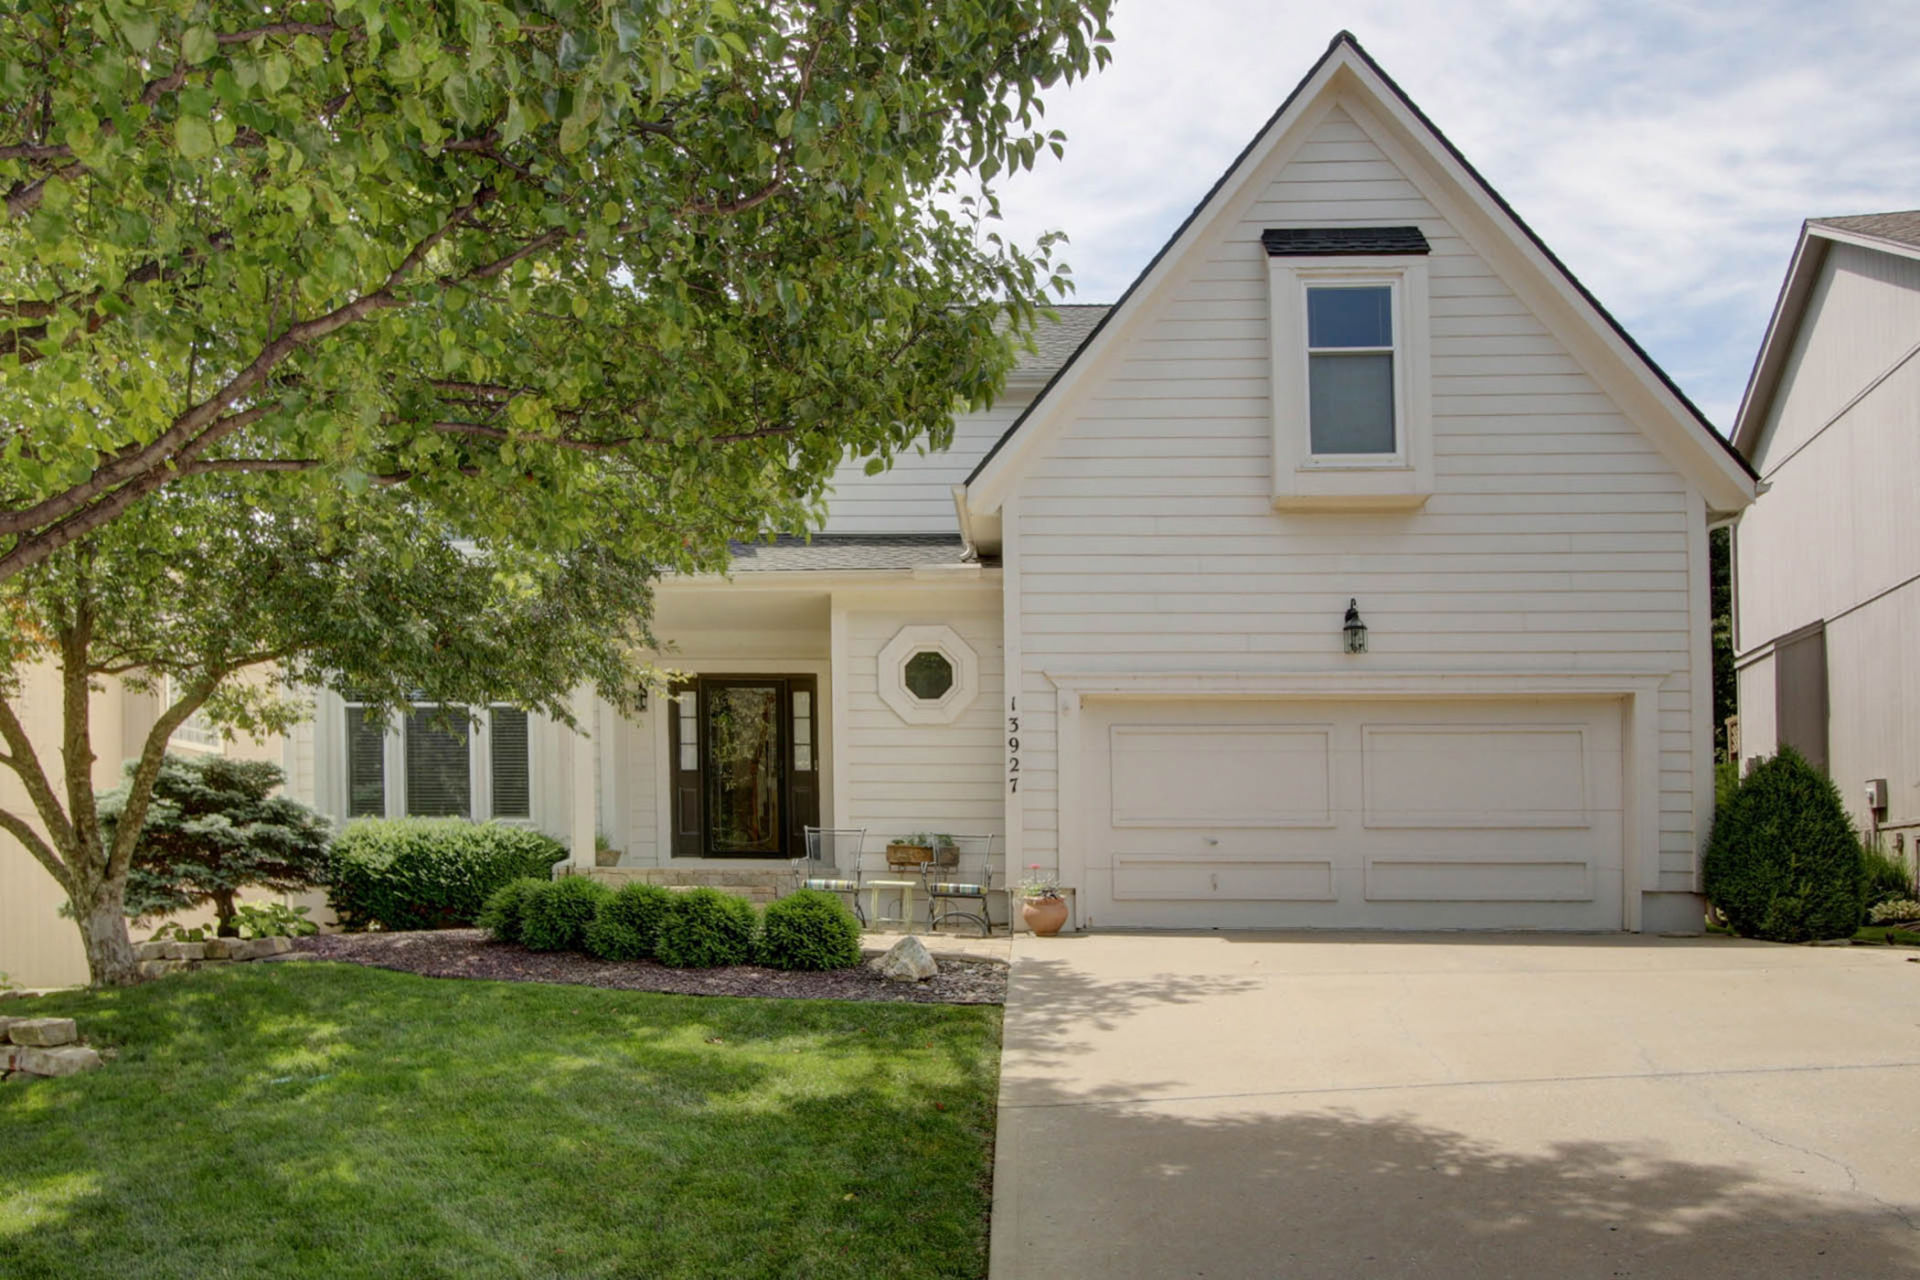 JUST LISTED in Shawnee! First OPEN HOUSE Sun 6/16!